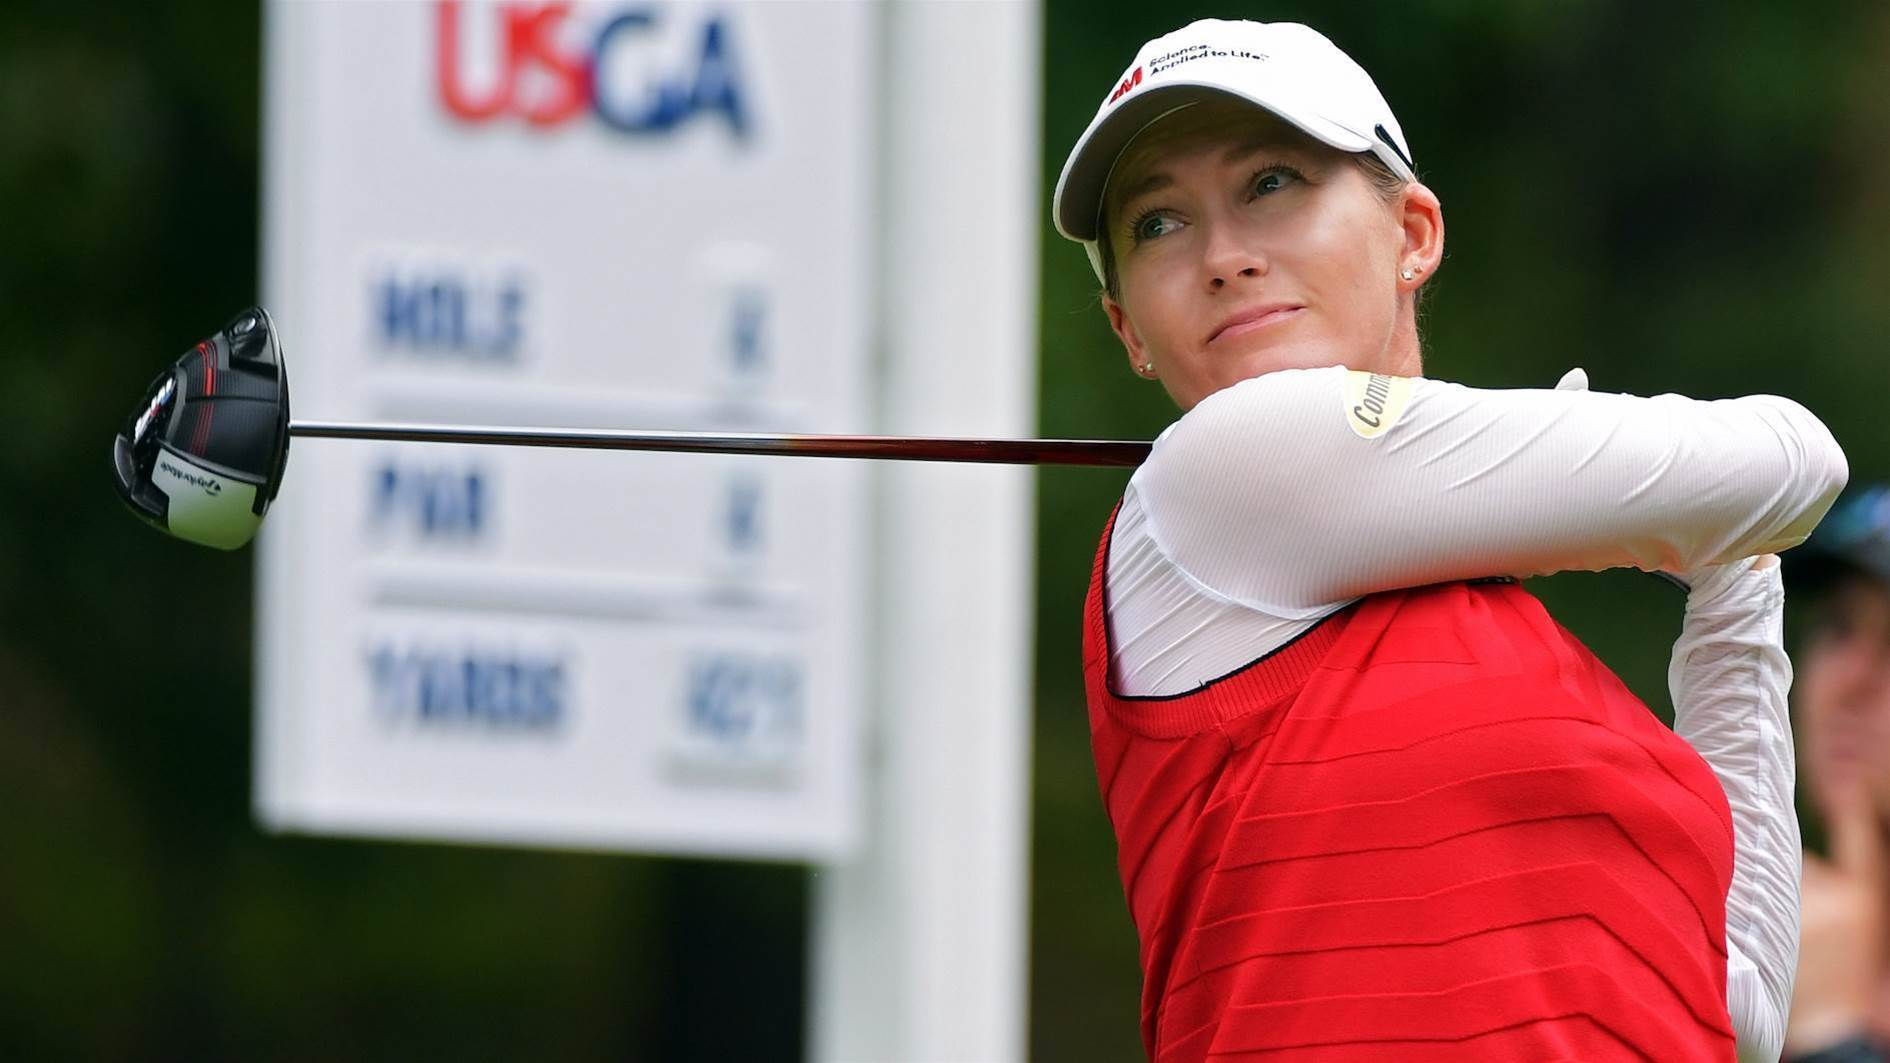 Smith increases U.S Women's Open lead